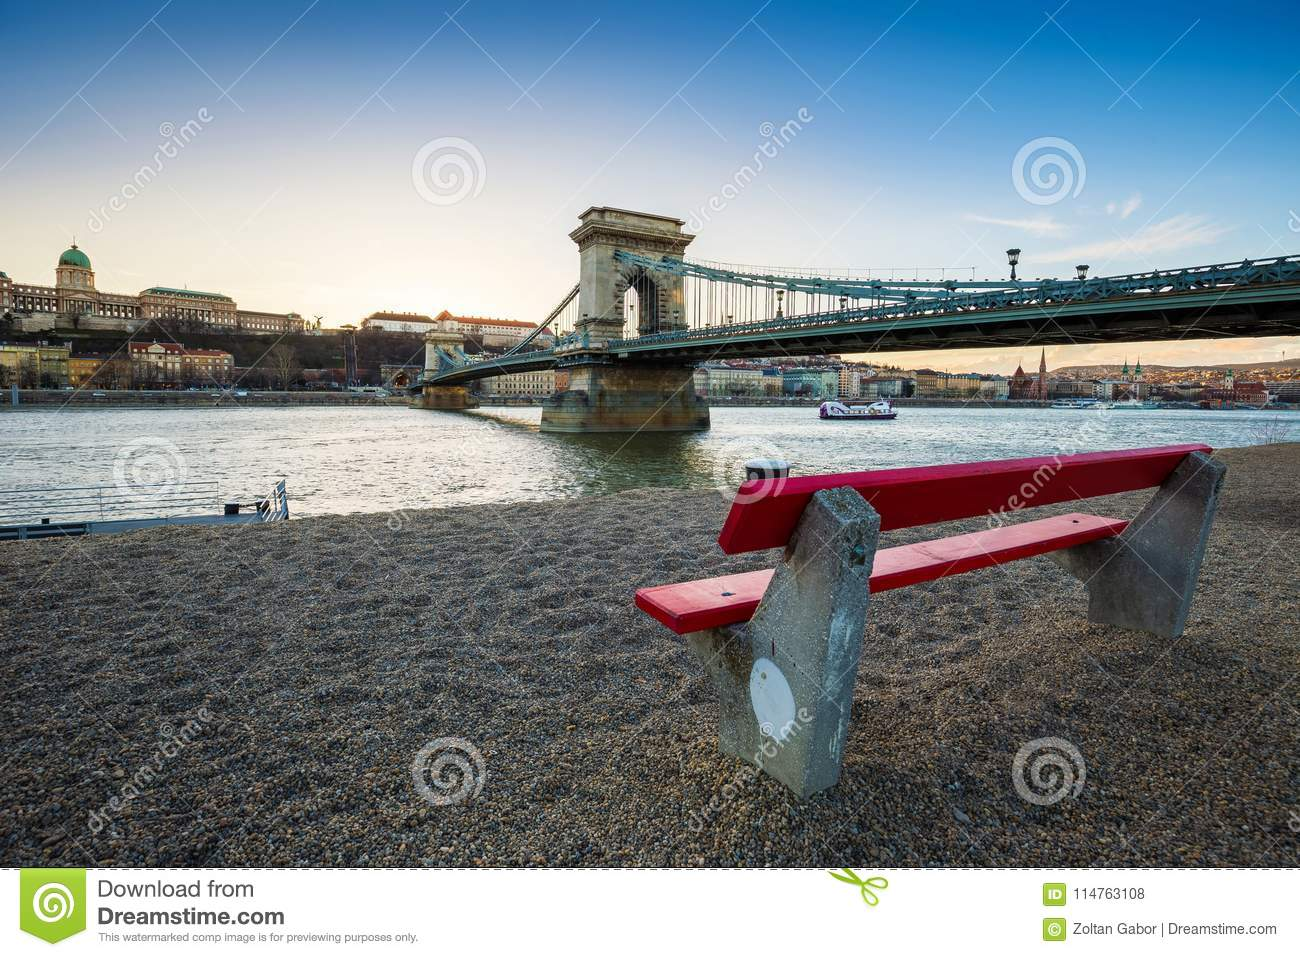 Budapest, Hungary - Traditional red bench at the riverside with Szechenyi Chain Bridge, Buda Castle Royal Palace